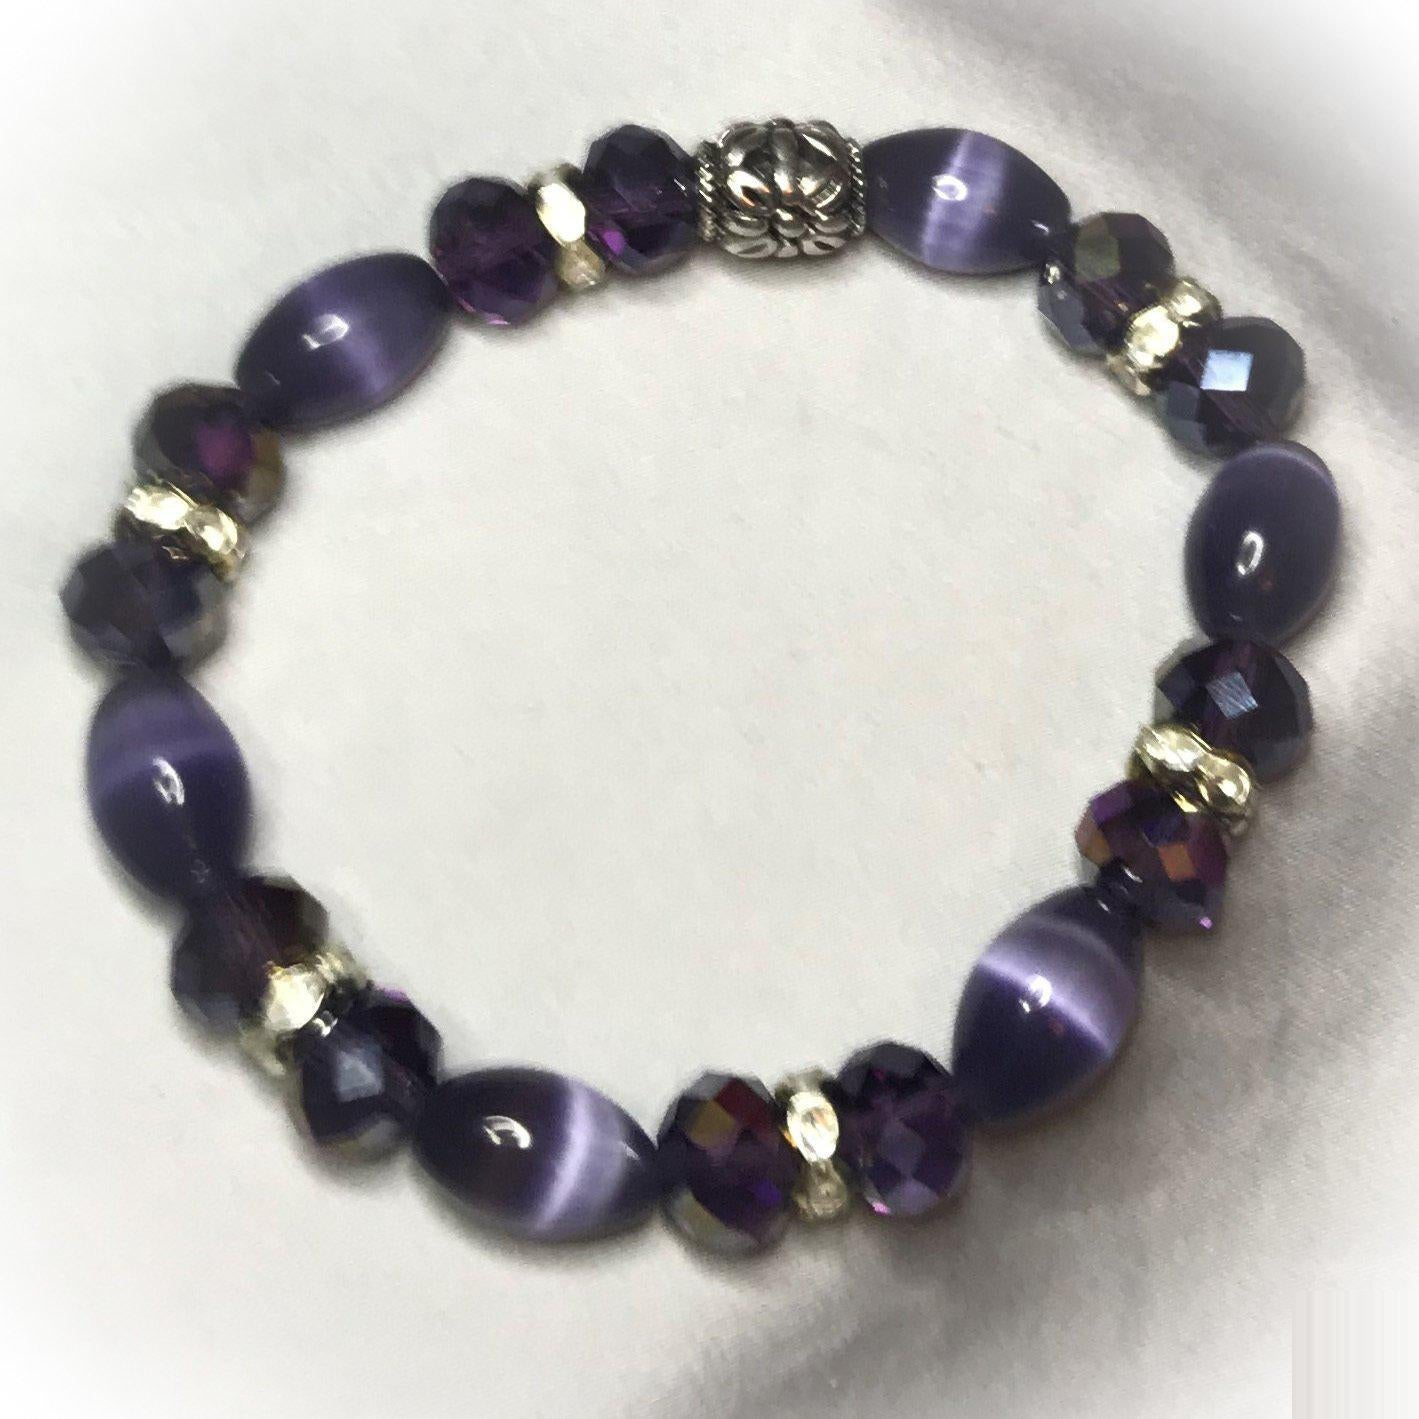 Glass Bead Stretchy Bracelet - B637